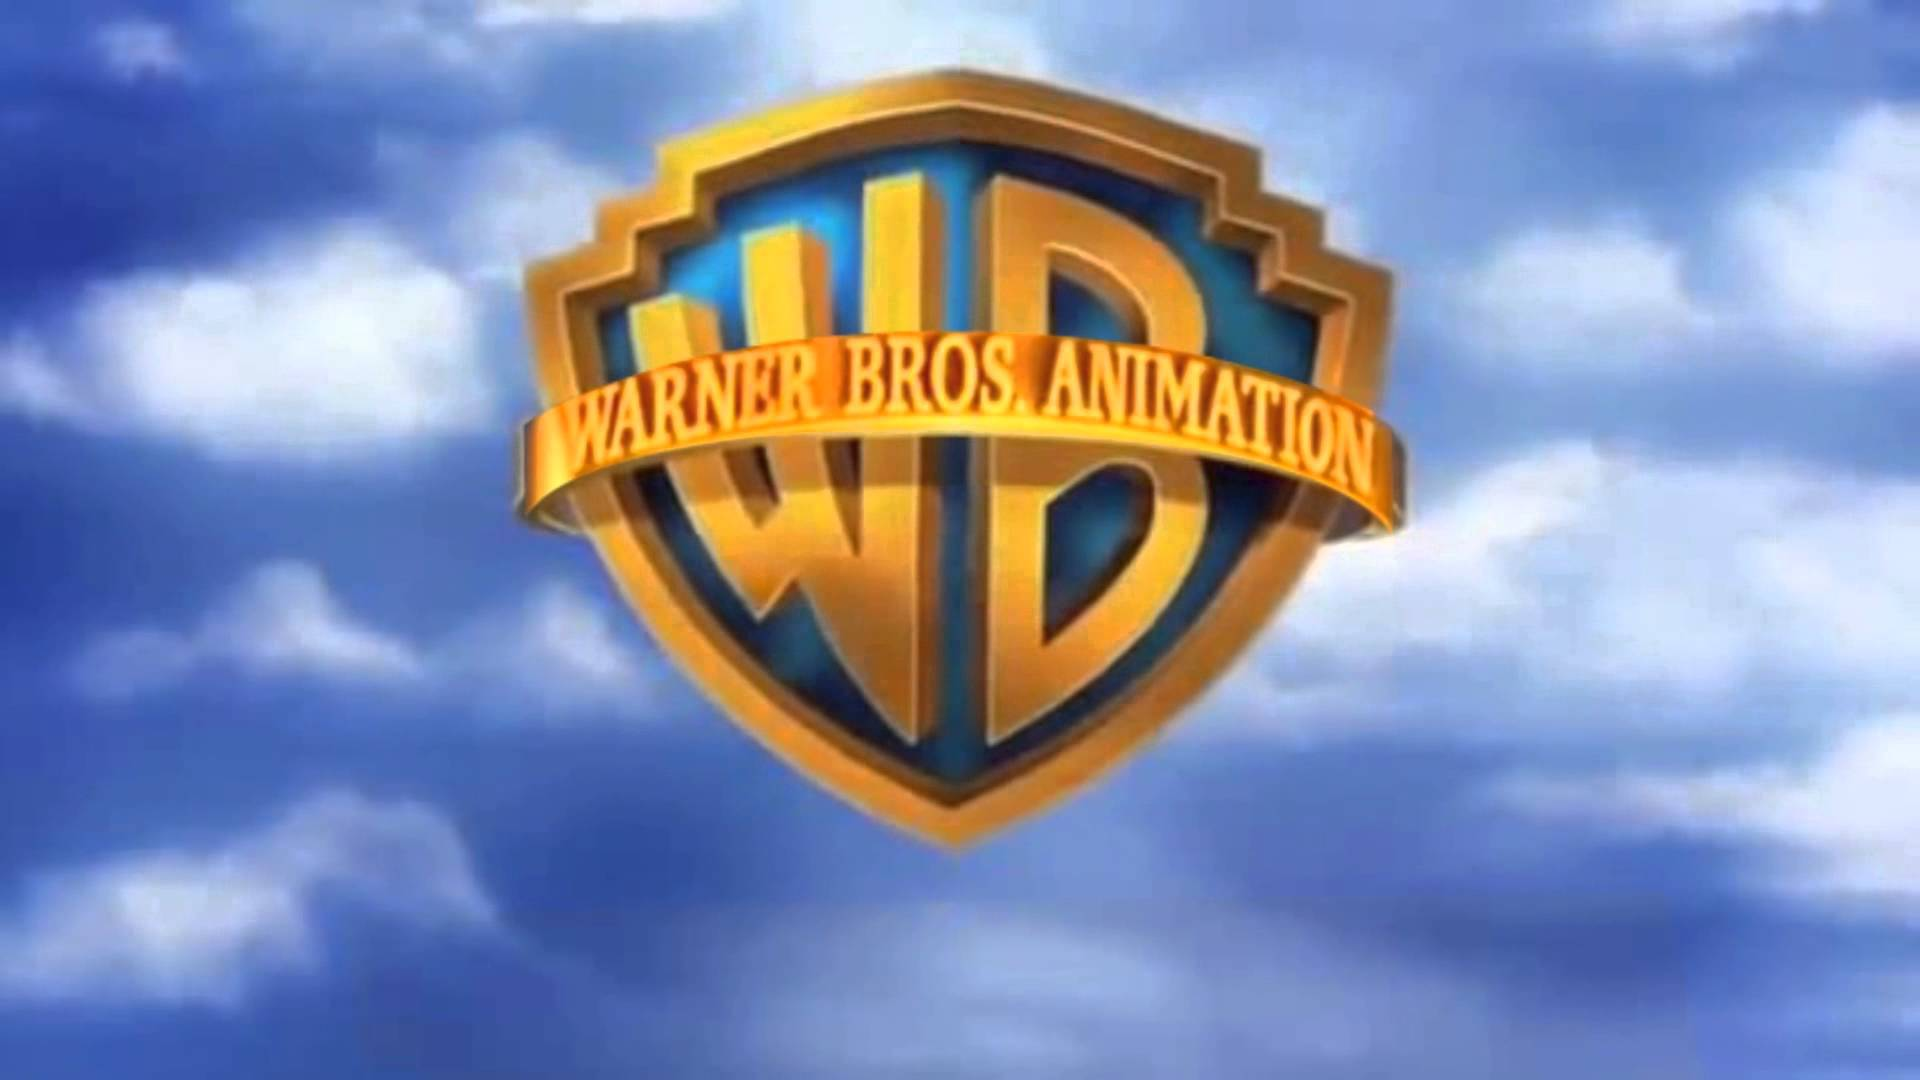 Warner bros animation Logos.